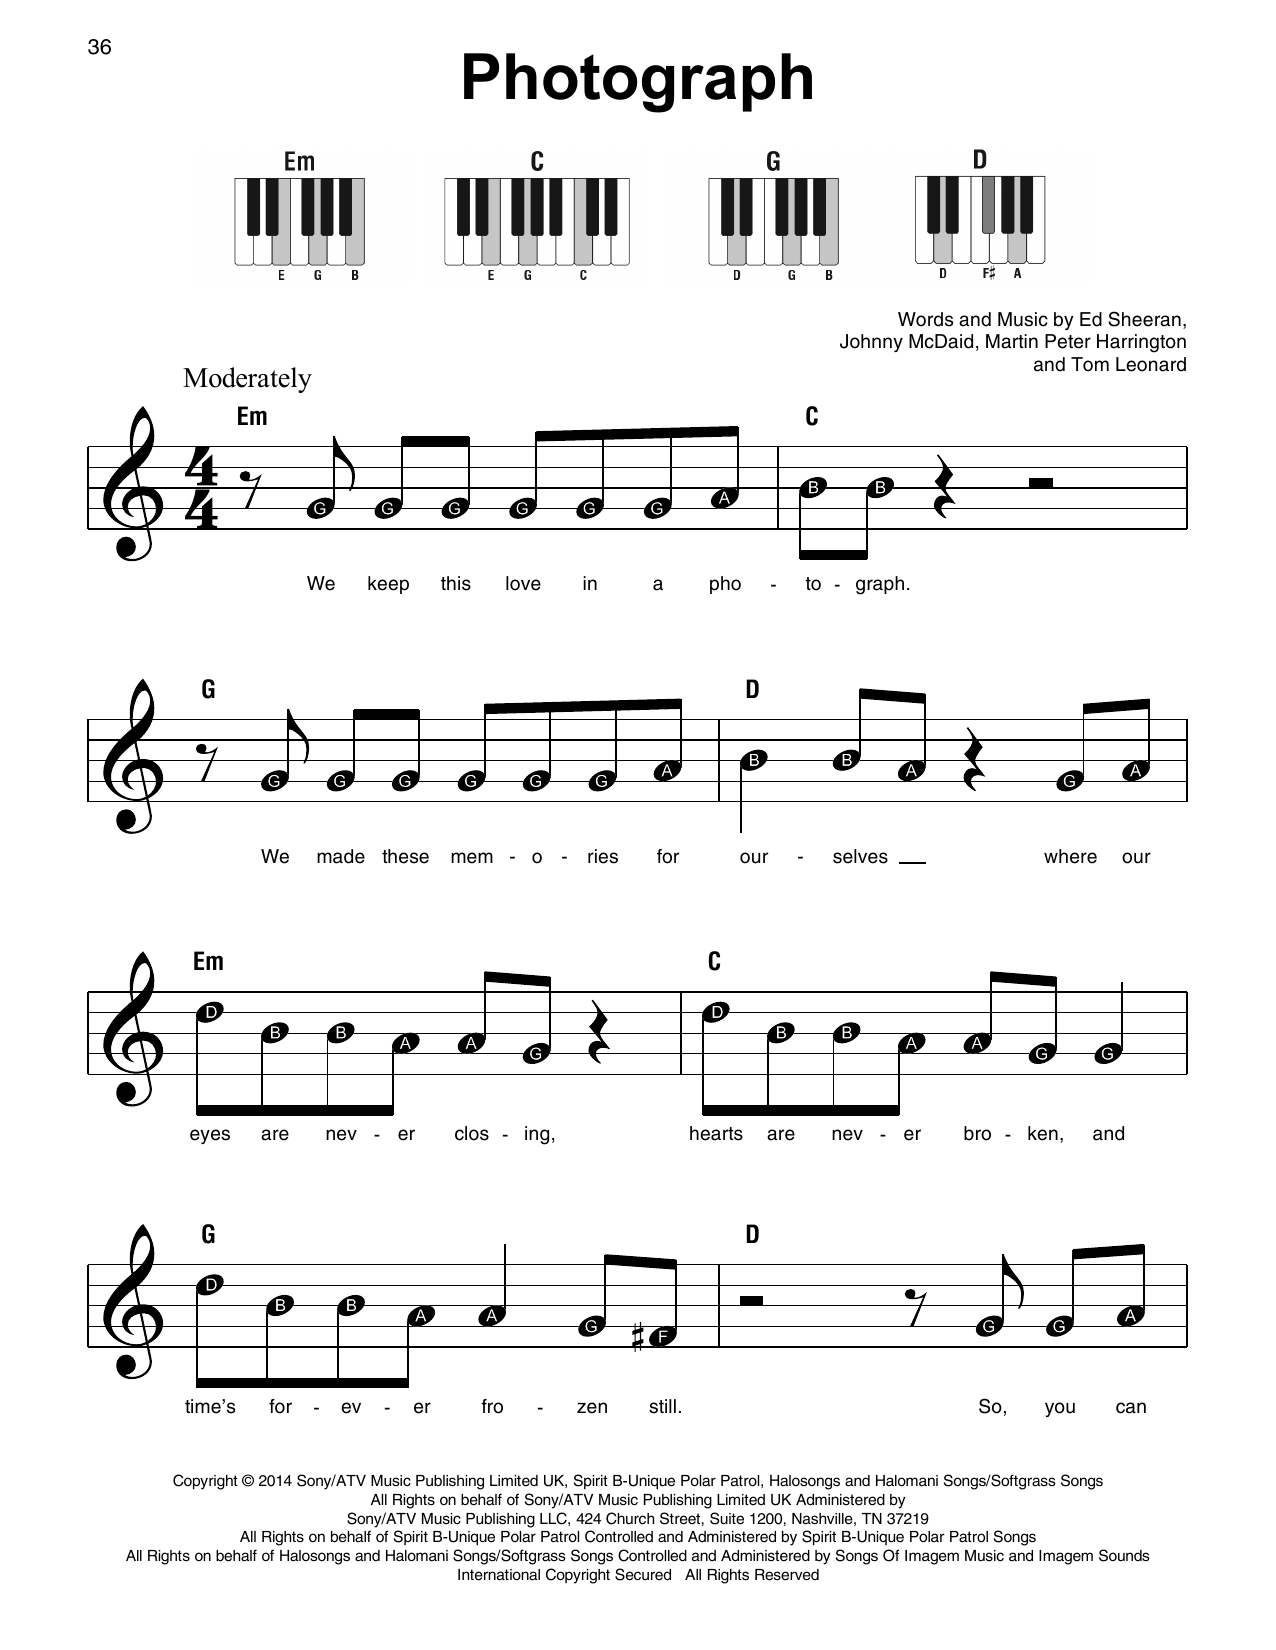 Ed Sheeran Photograph Sheet Music Notes Chords Download Printable Super Easy Piano Sku 410117